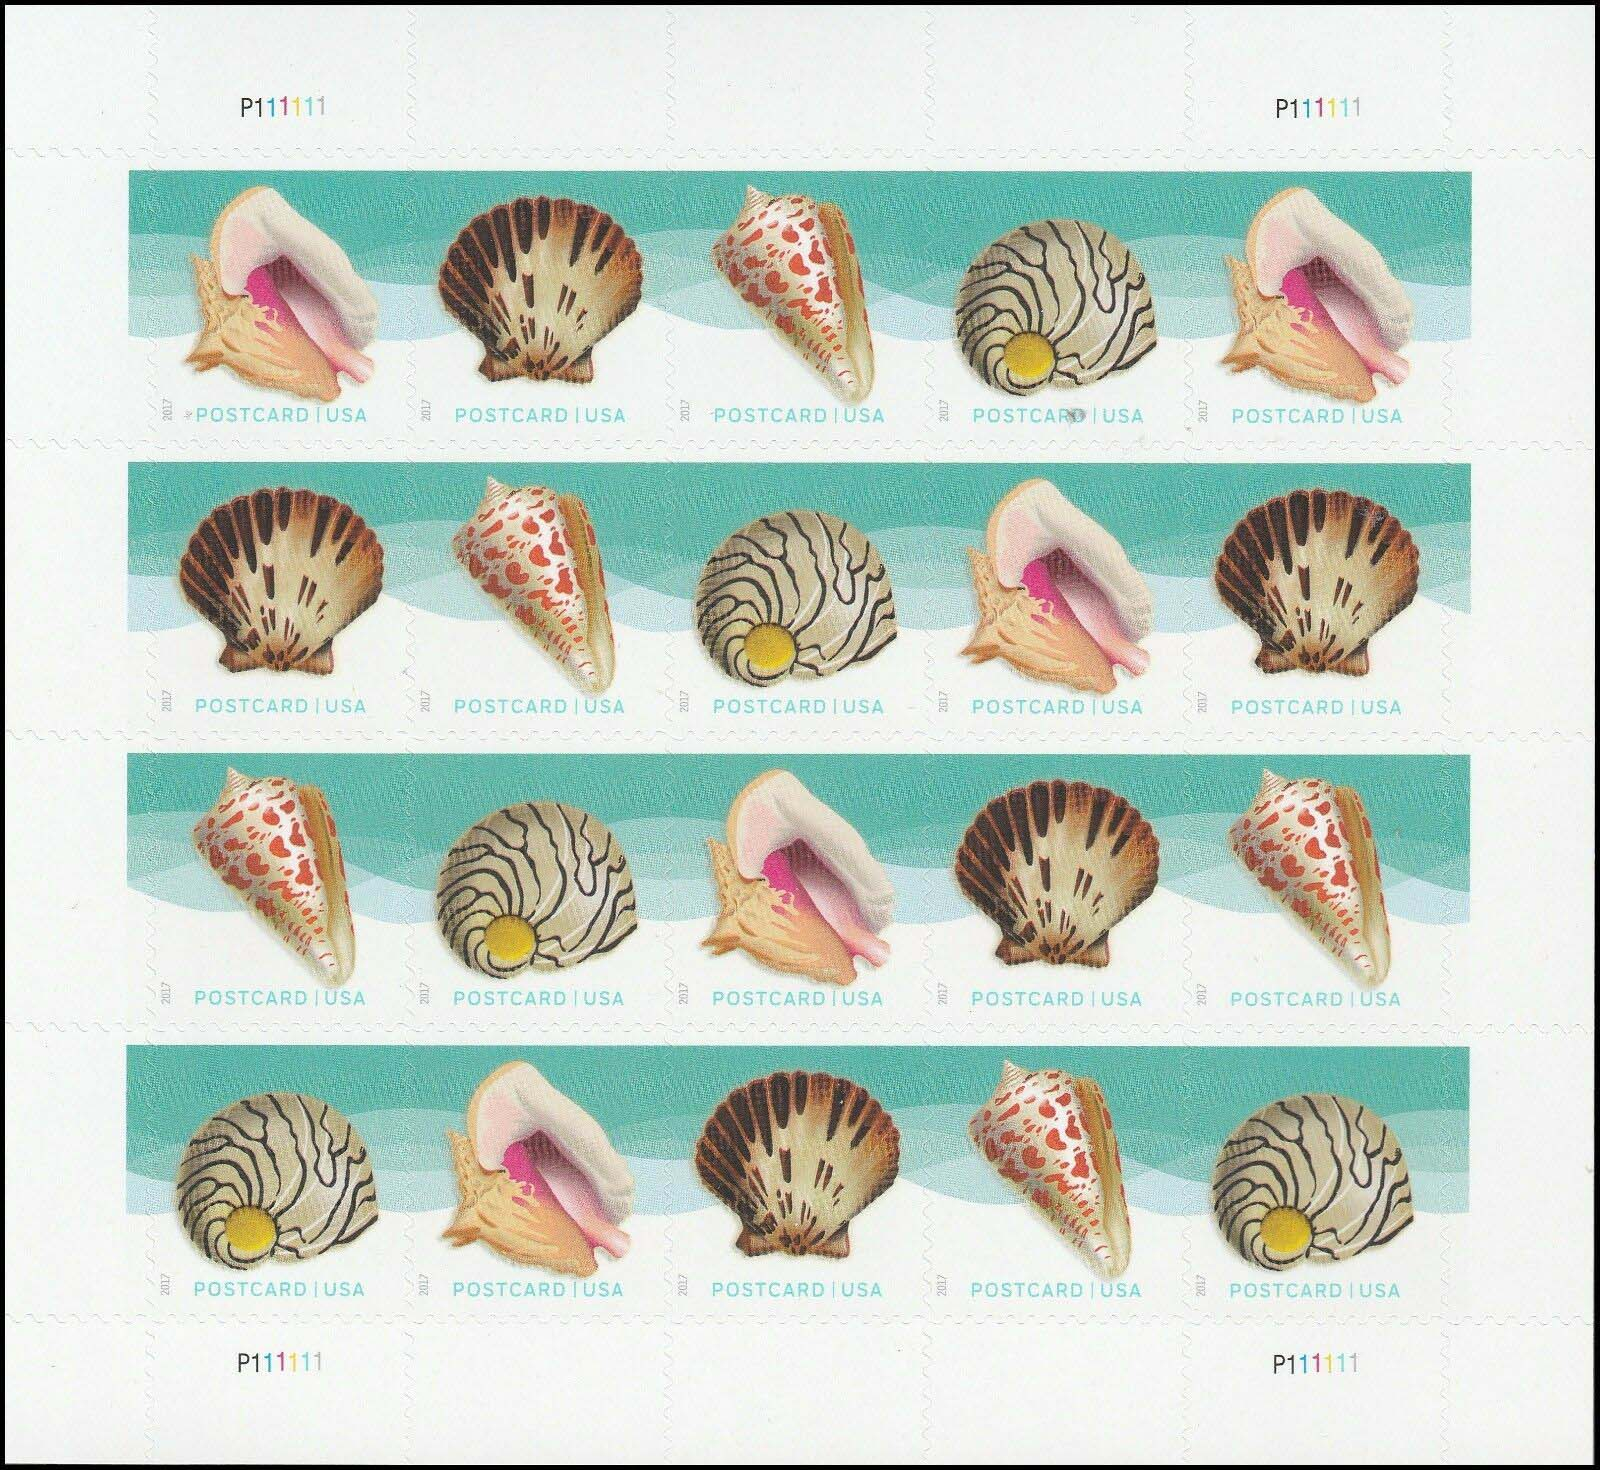 Scott #5163-5166, Forever Sheet of 20, Seashells